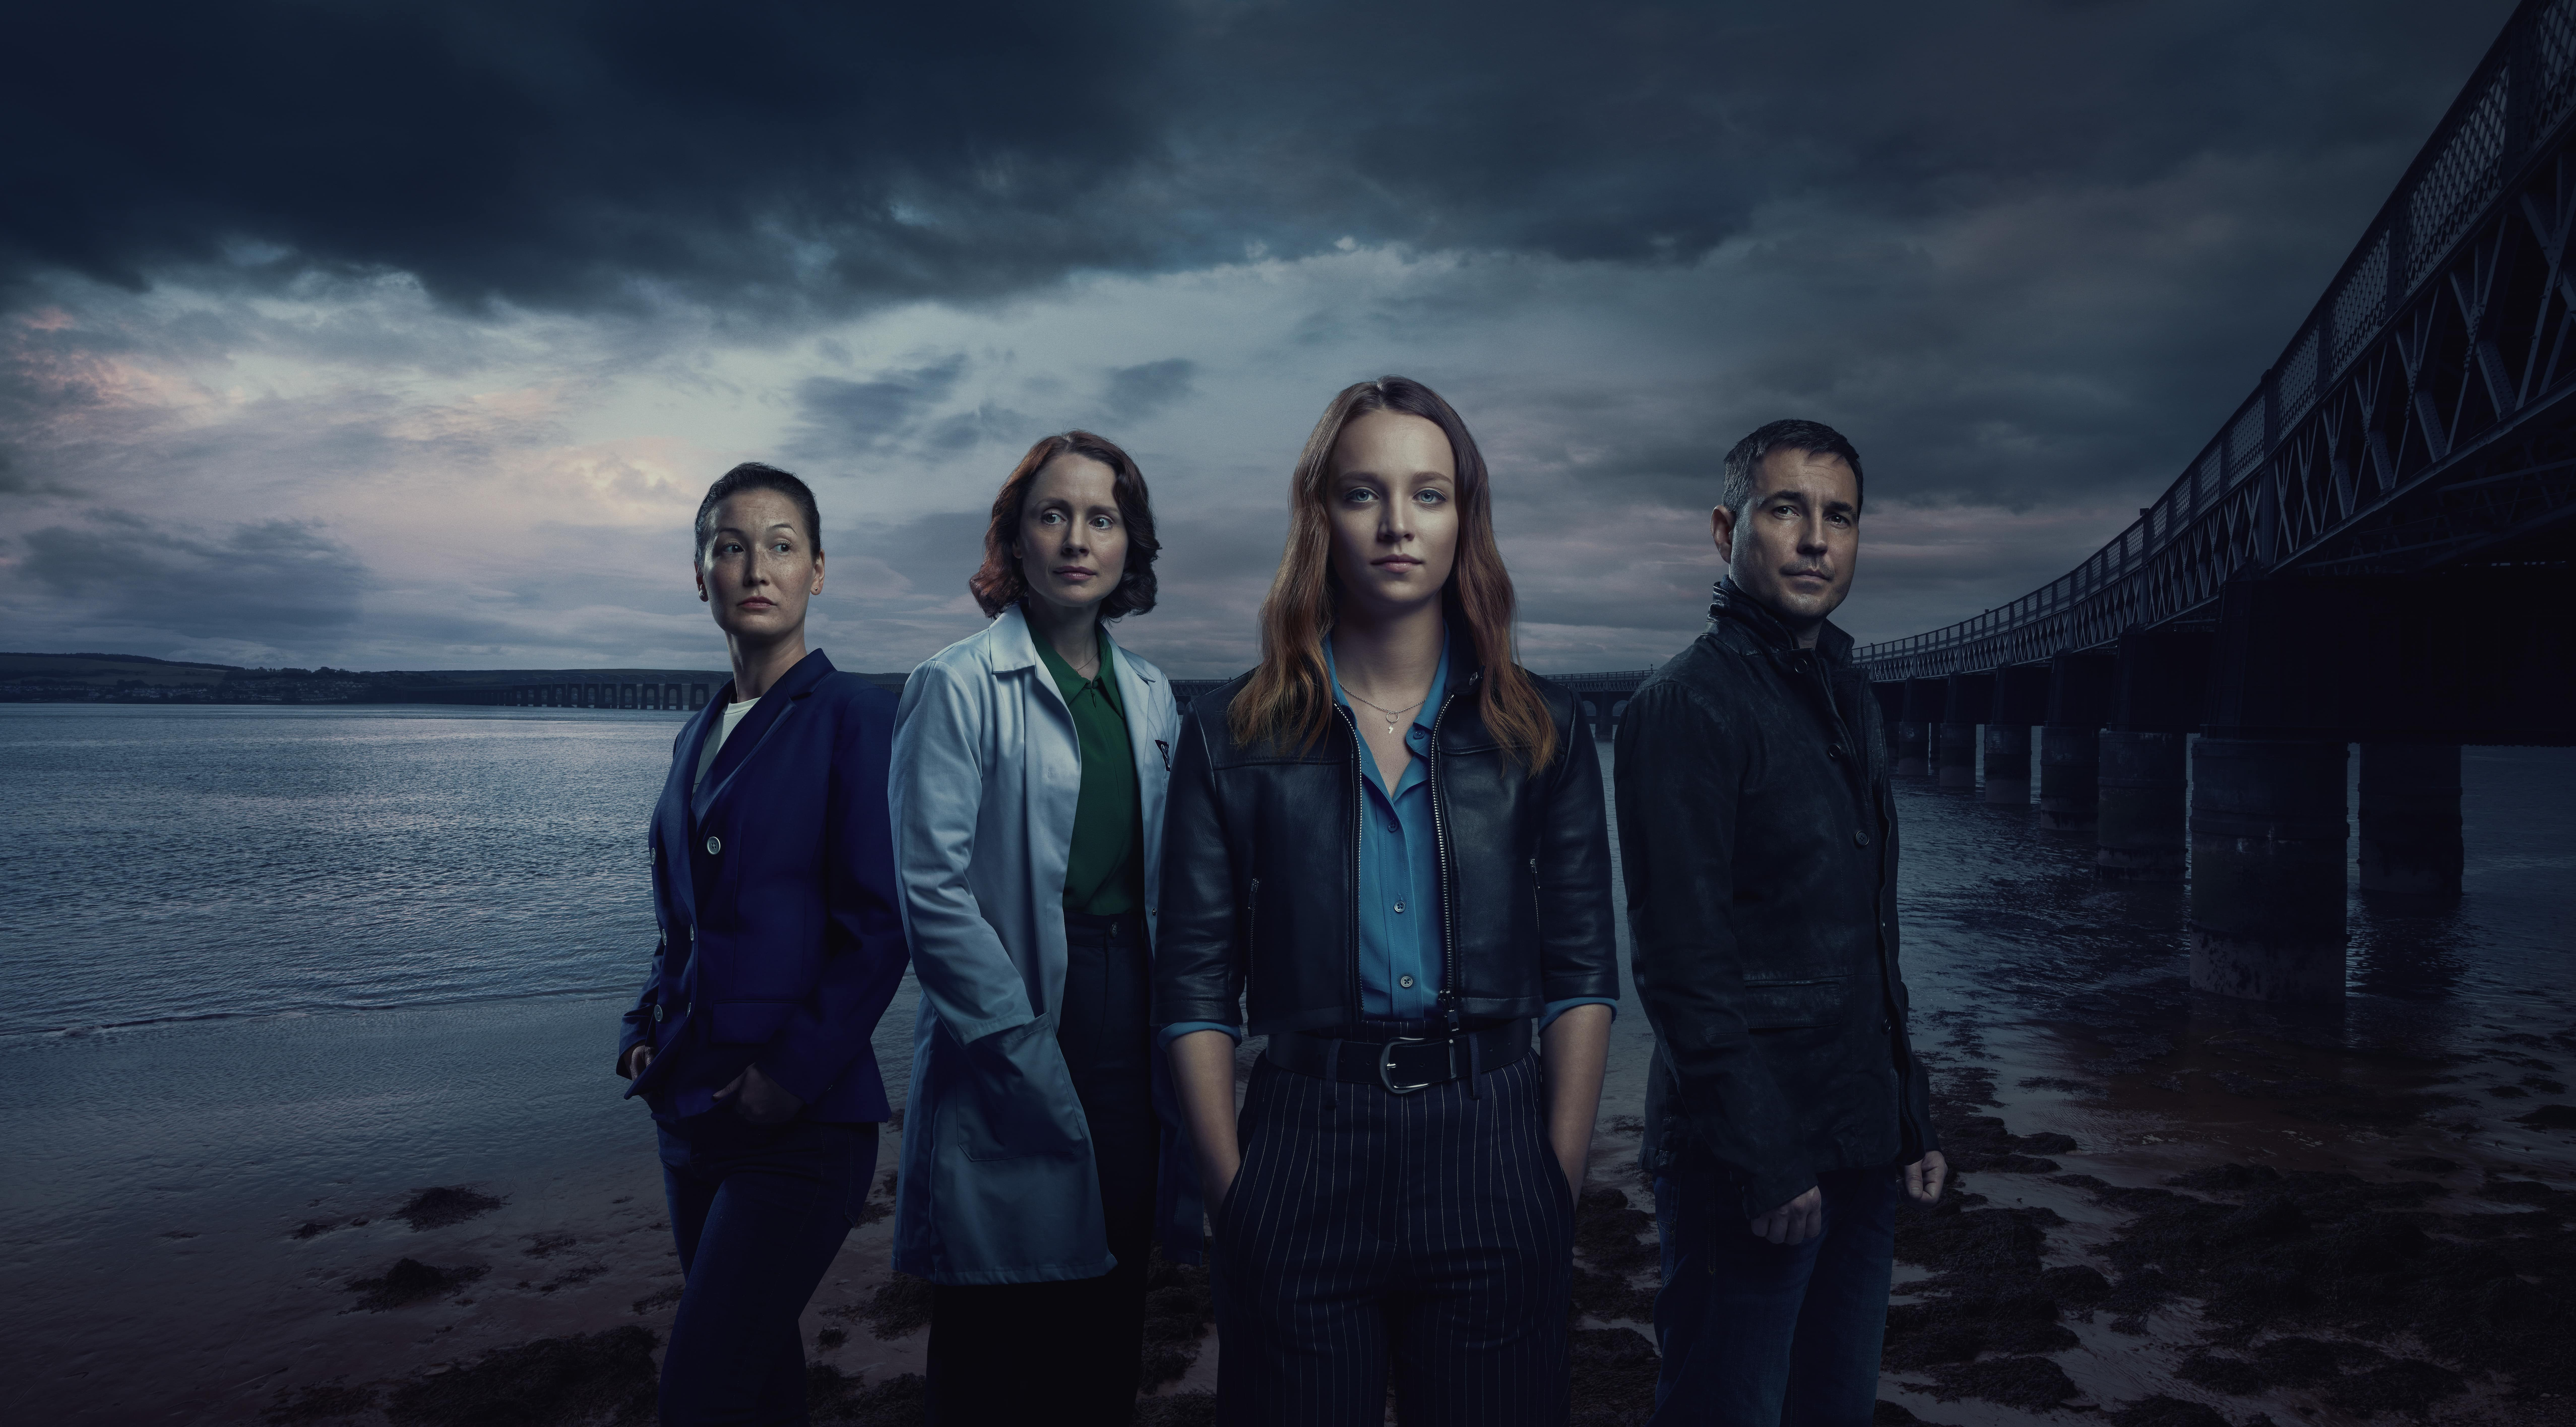 The cast of 'Traces' (from left): Jennifer Spence as Kathy Torrance, Laura Fraser as Prof. Sarah Gordon, Molly Windsor as Emma Hedges and Martin Compston as Daniel McAfee